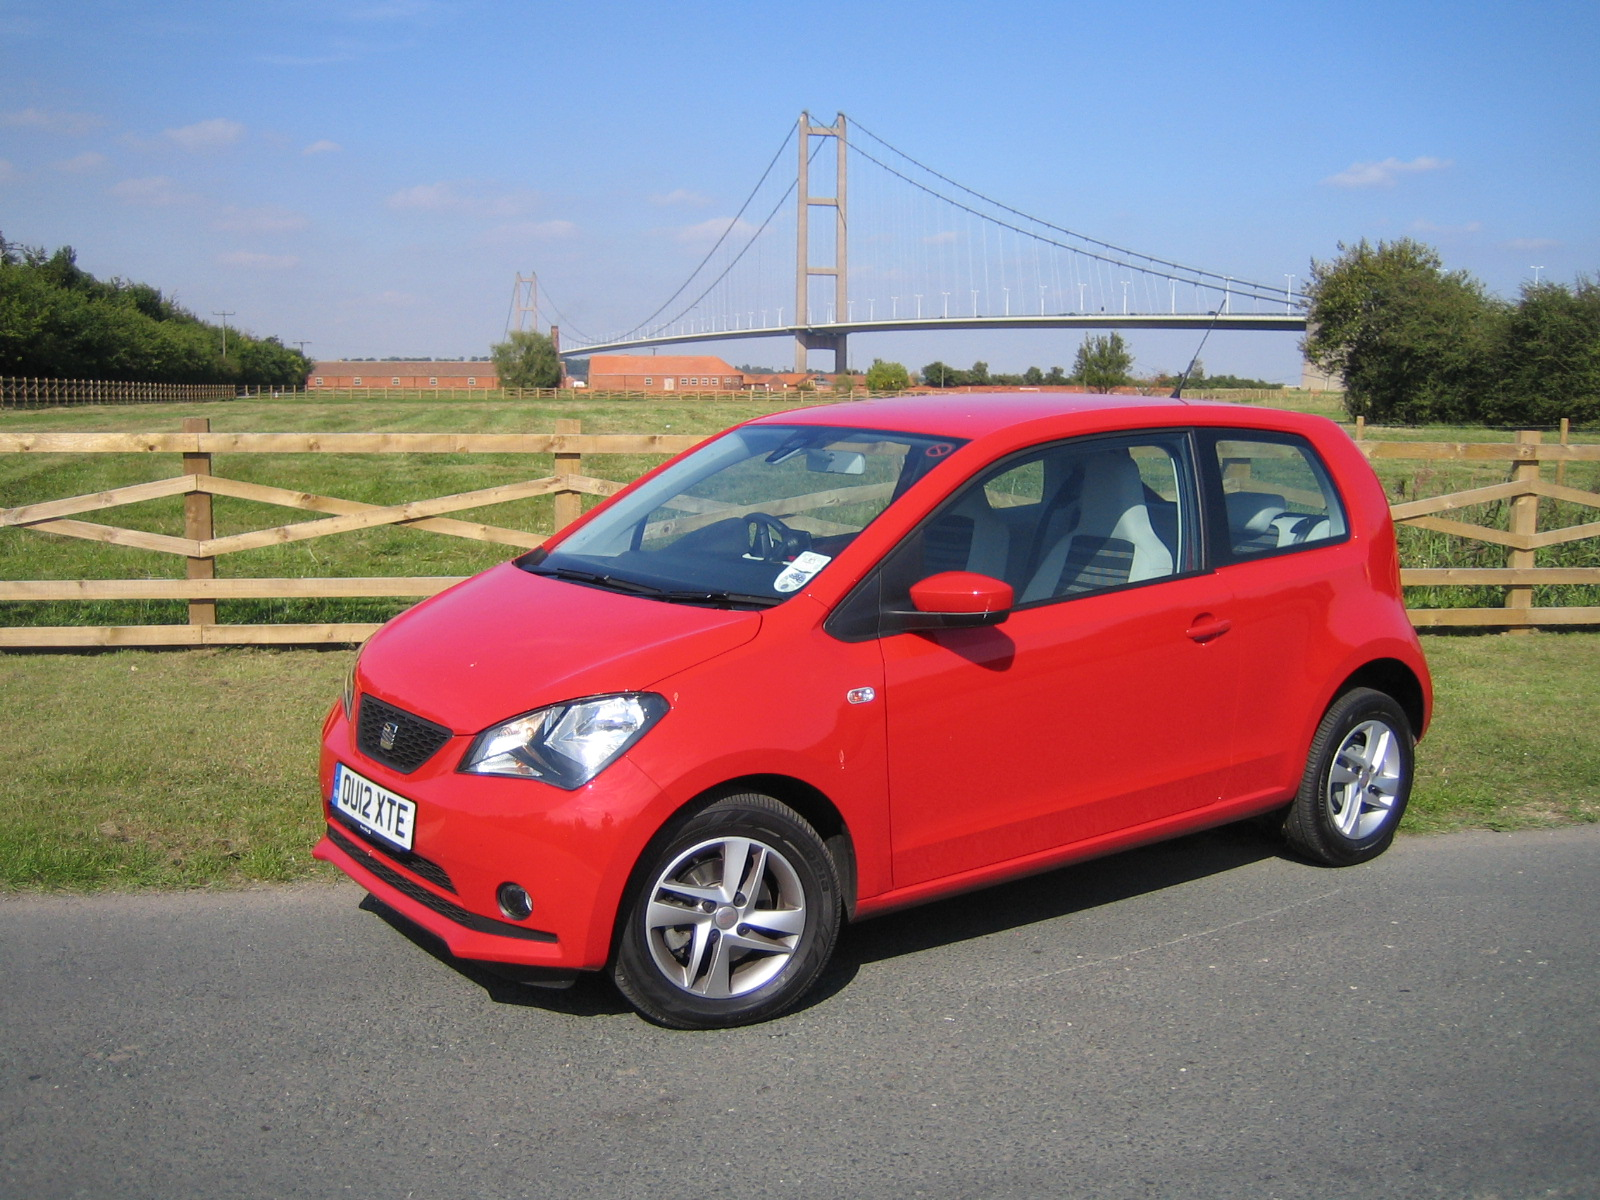 seat mii new car review from 2012 on first car. Black Bedroom Furniture Sets. Home Design Ideas